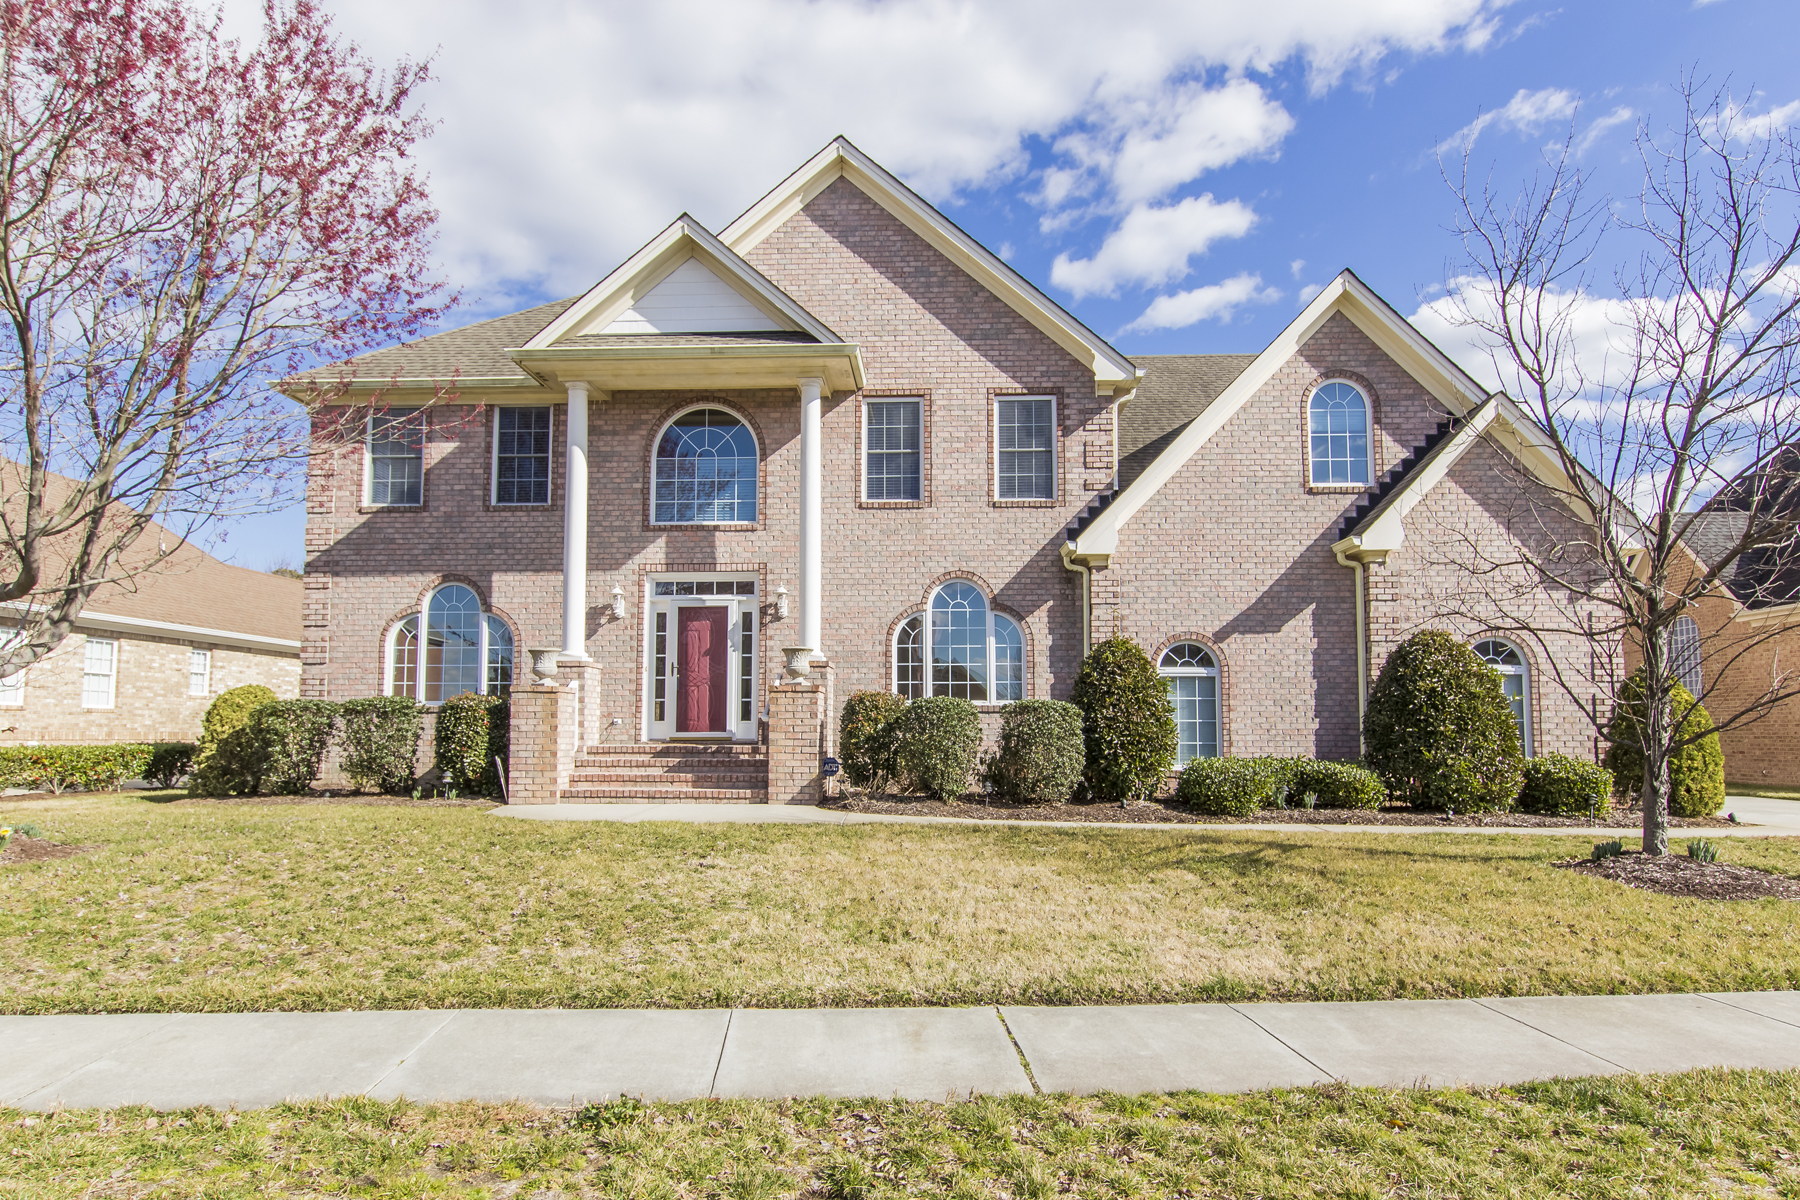 Single Family Home for Sale at Cahoon Plantation 335 Greens Edge Dr Chesapeake, Virginia 23322 United States